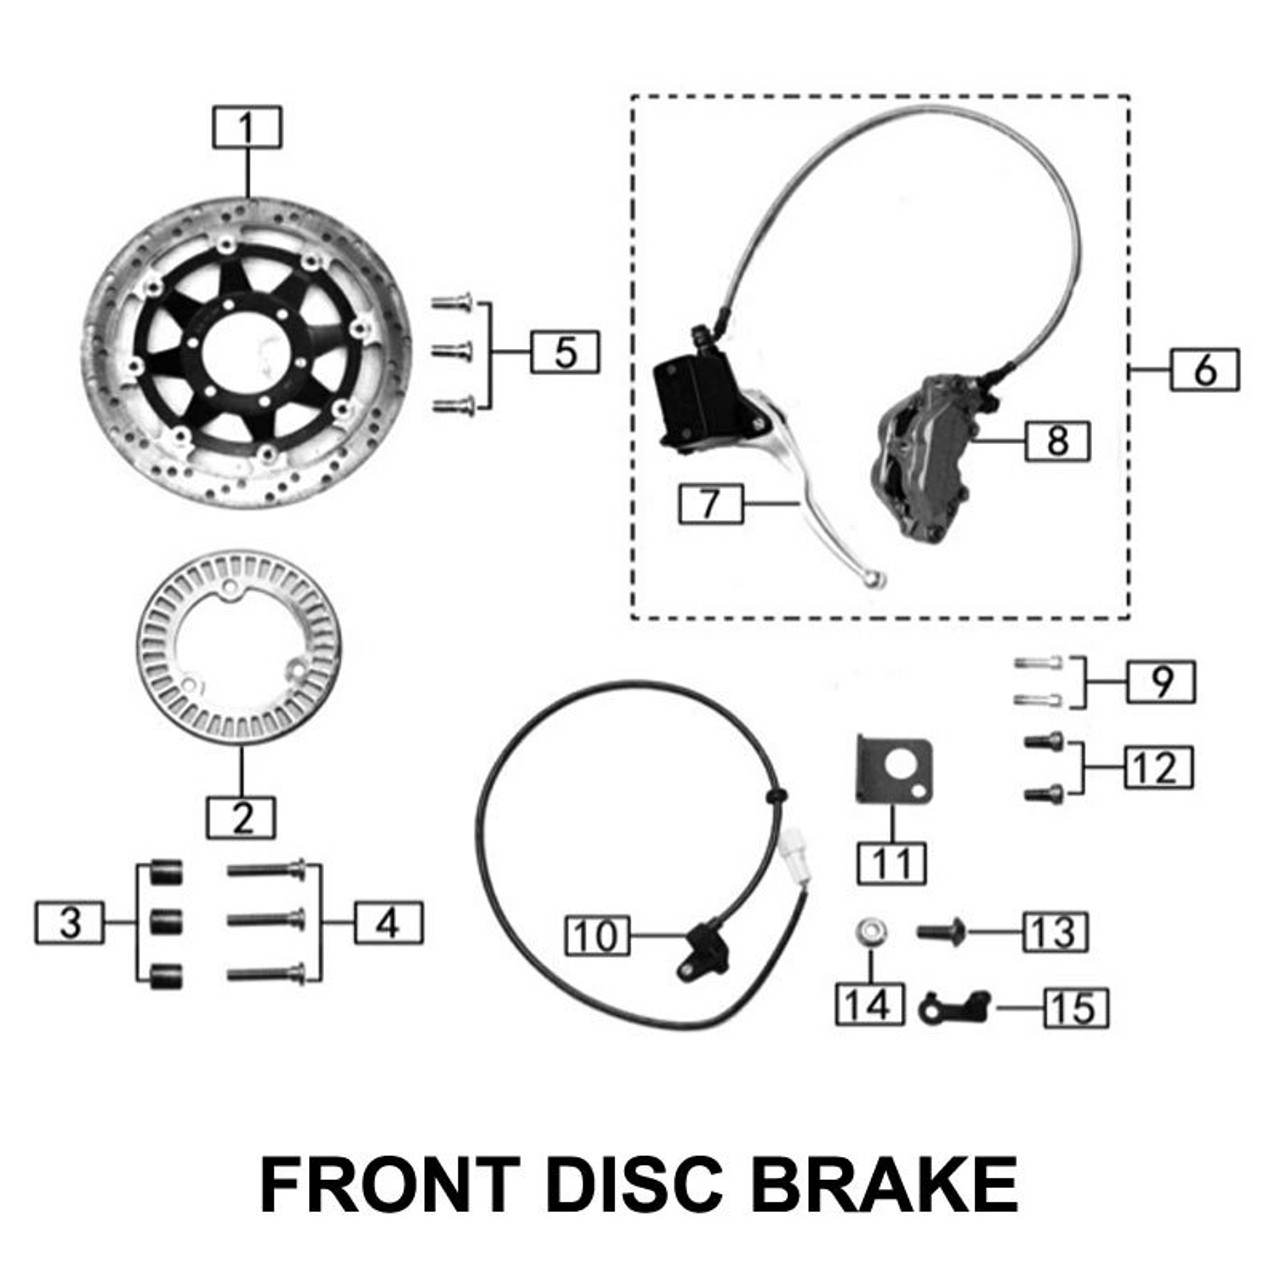 BRAKES, FRONT